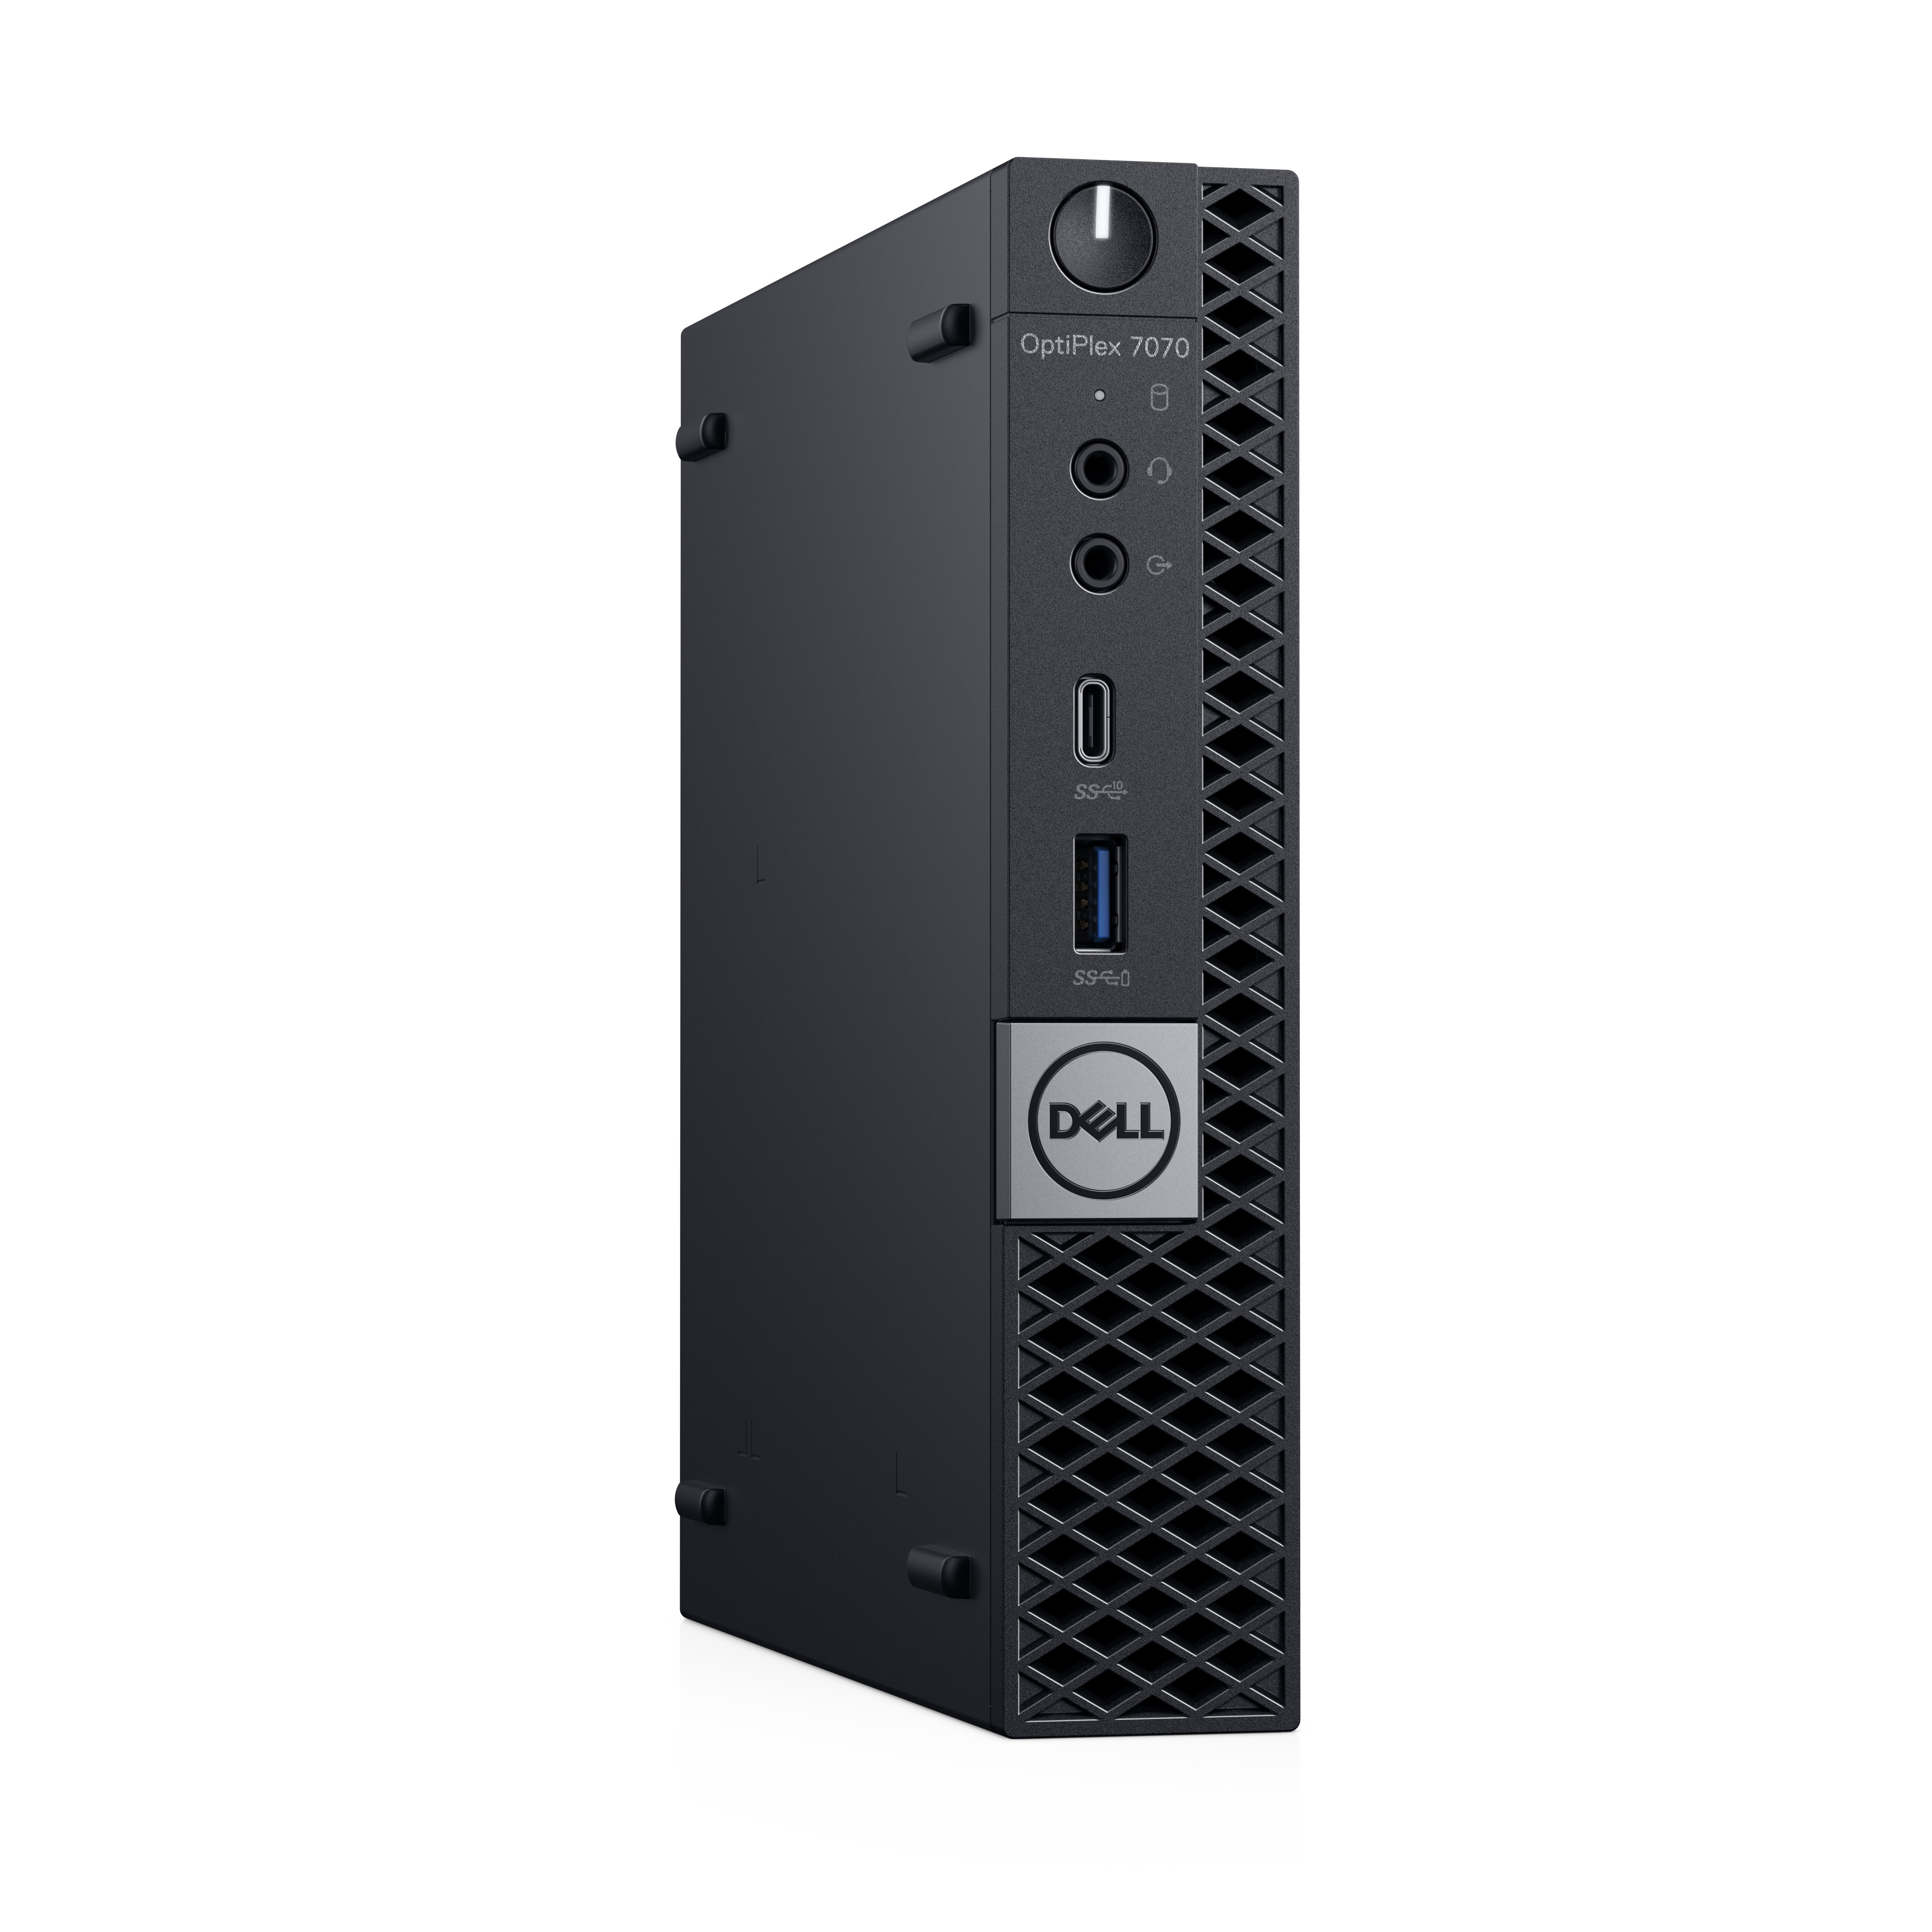 Komputer DELL Optiplex 7070 MFF i5-9500T 8GB 256GB SSD WIFI BT W10Pro 3YNBD